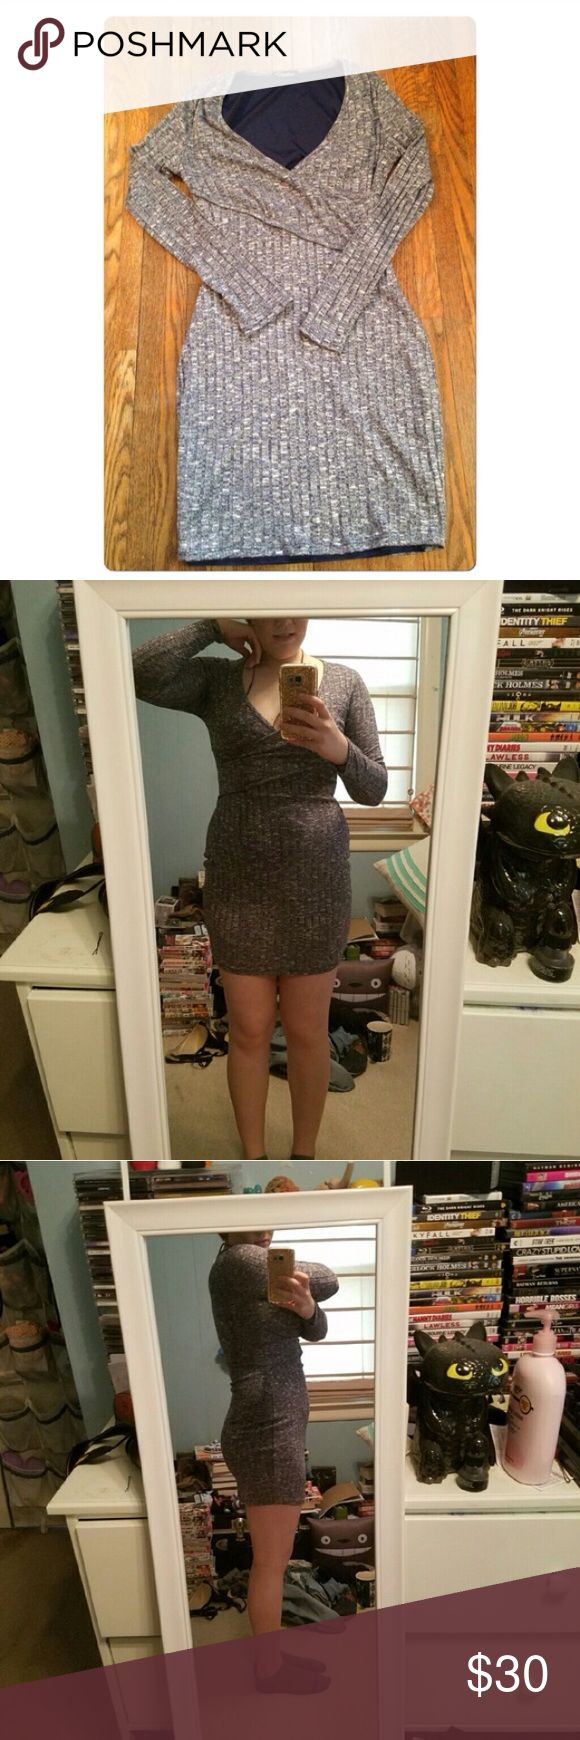 """NWOT Gray body contour dress! This is such a cute dress! Perfect for going out to get drinks or on a date!! It's very form fitting, so it'll really show off your curves! It's a medium but fits more like a small! It has never been worn! It has no holes or stains! It comes from a smoke free environment! """"No trades, holds, or modeling. And no sales outside poshmark."""" Price Is Firm Dresses"""